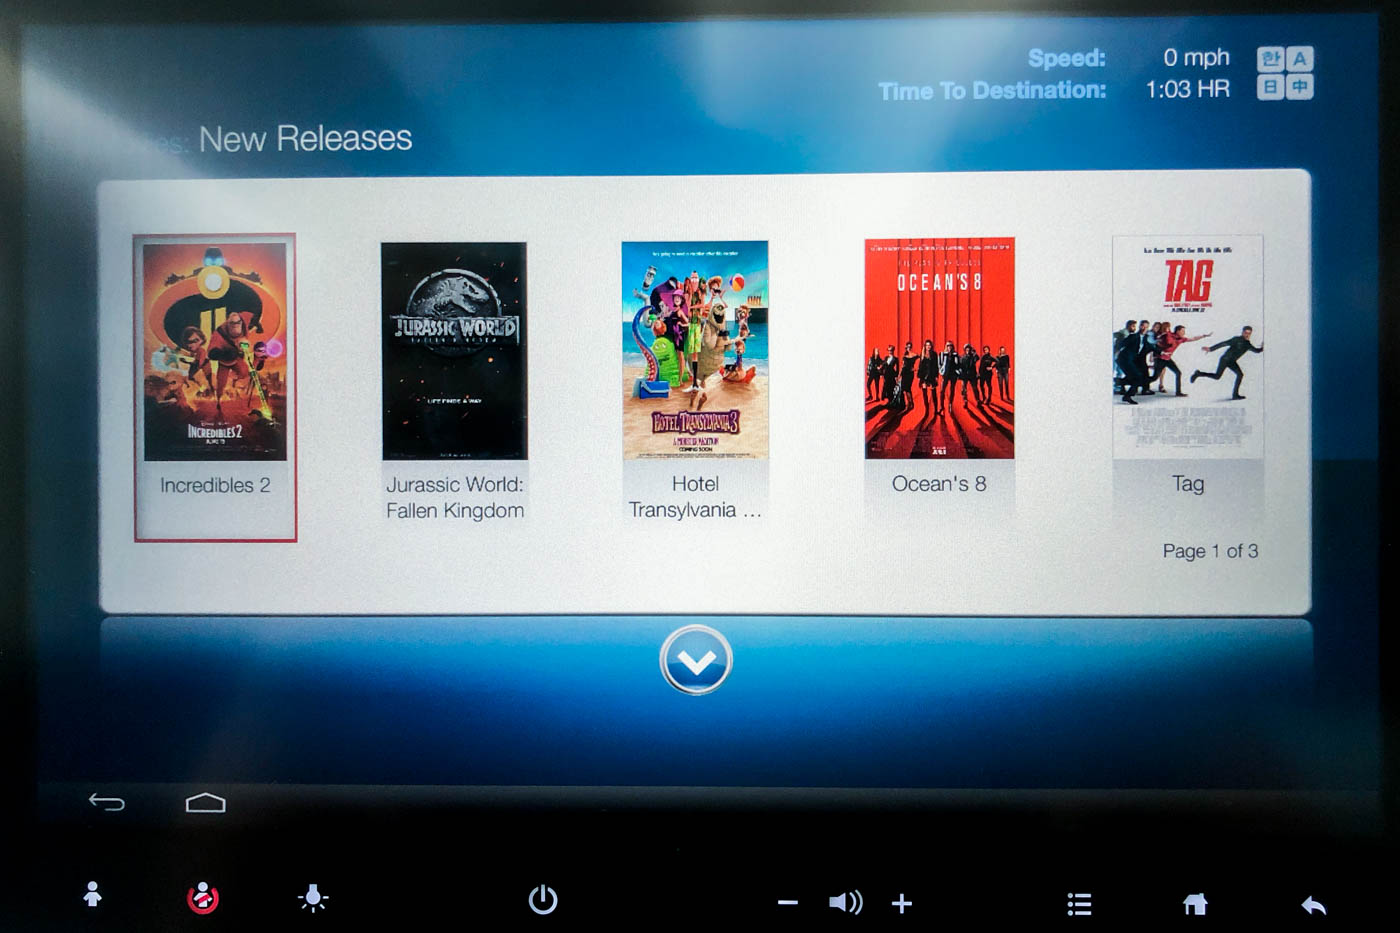 Korean Air In-Flight Entertainment System Movies